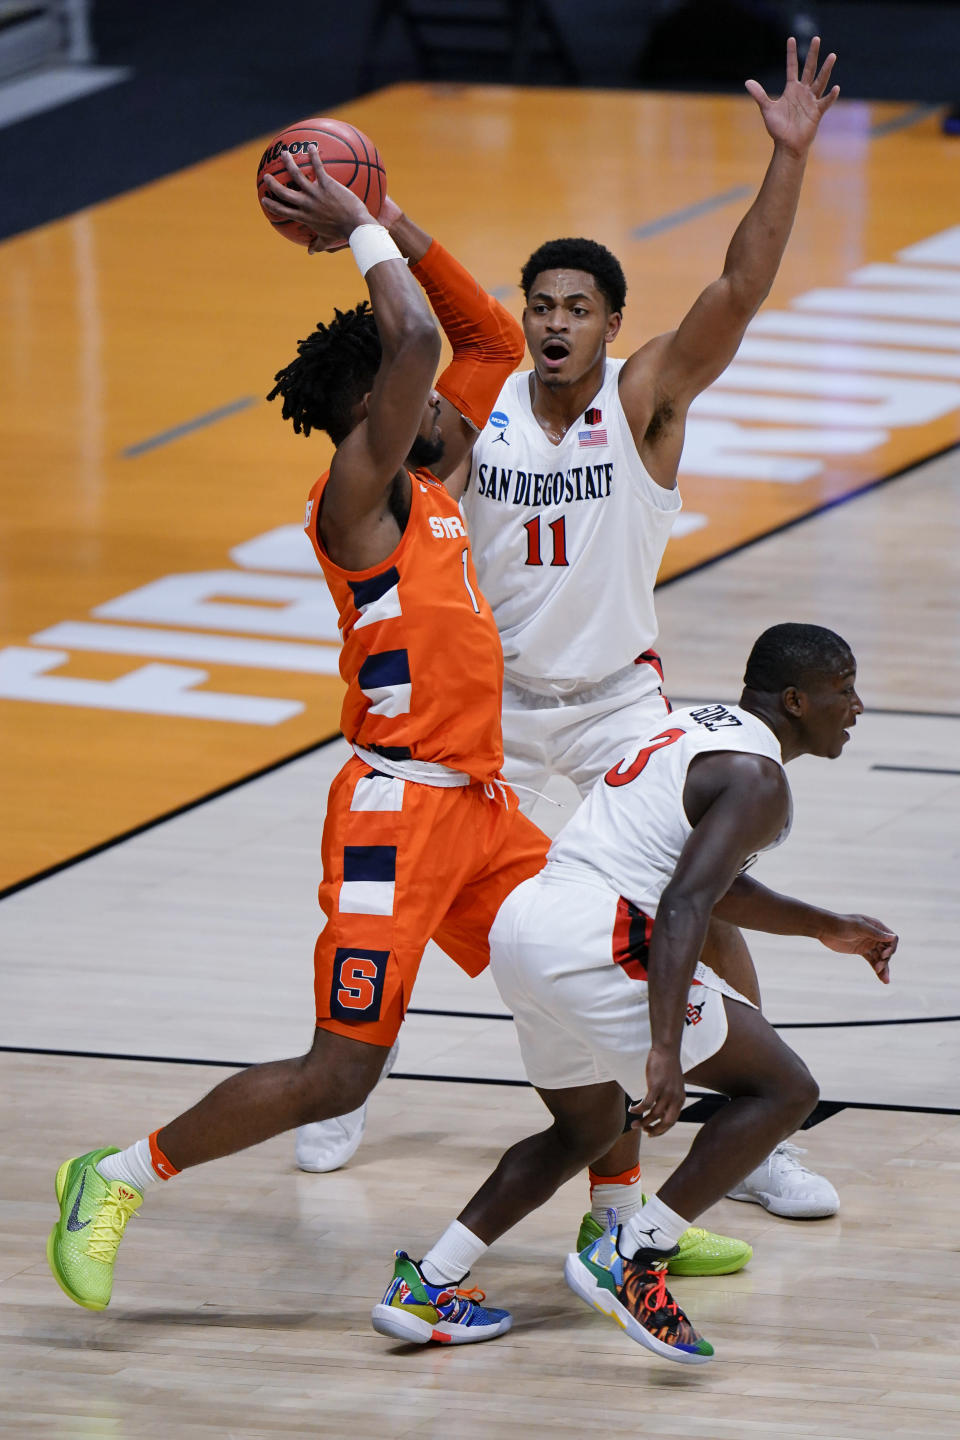 San Diego State forward Matt Mitchell (11) defends against Syracuse forward Quincy Guerrier during the first half of a college basketball game in the first round of the NCAA tournament at Hinkle Fieldhouse in Indianapolis, Friday, March 19, 2021. (AP Photo/AJ Mast)